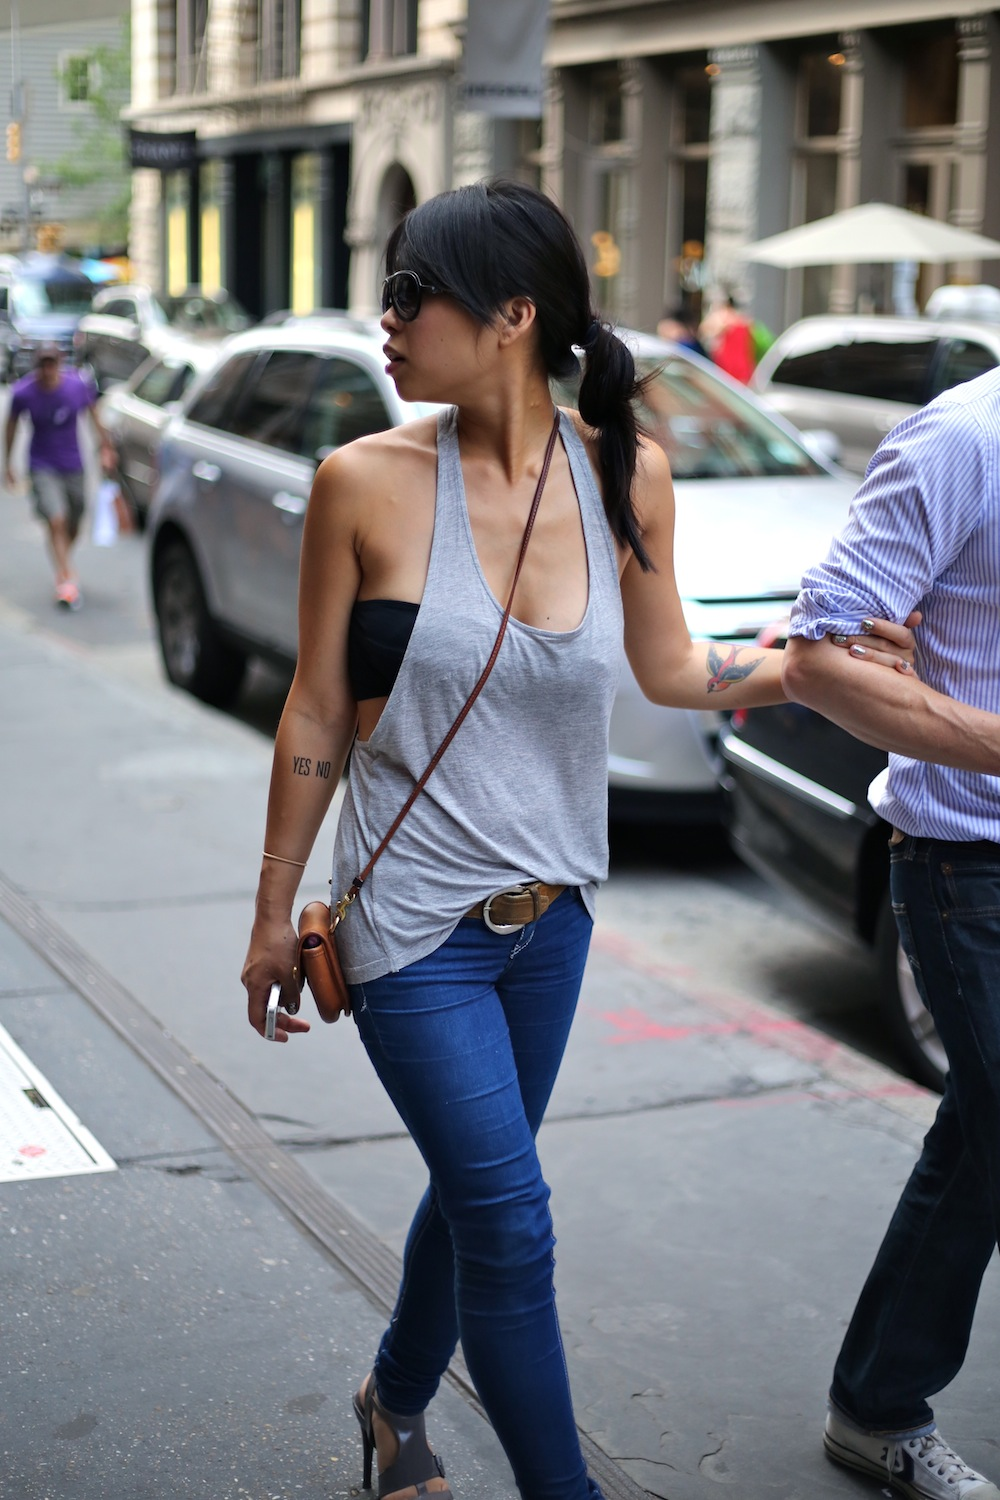 How to wear a tube top without a strapless bra